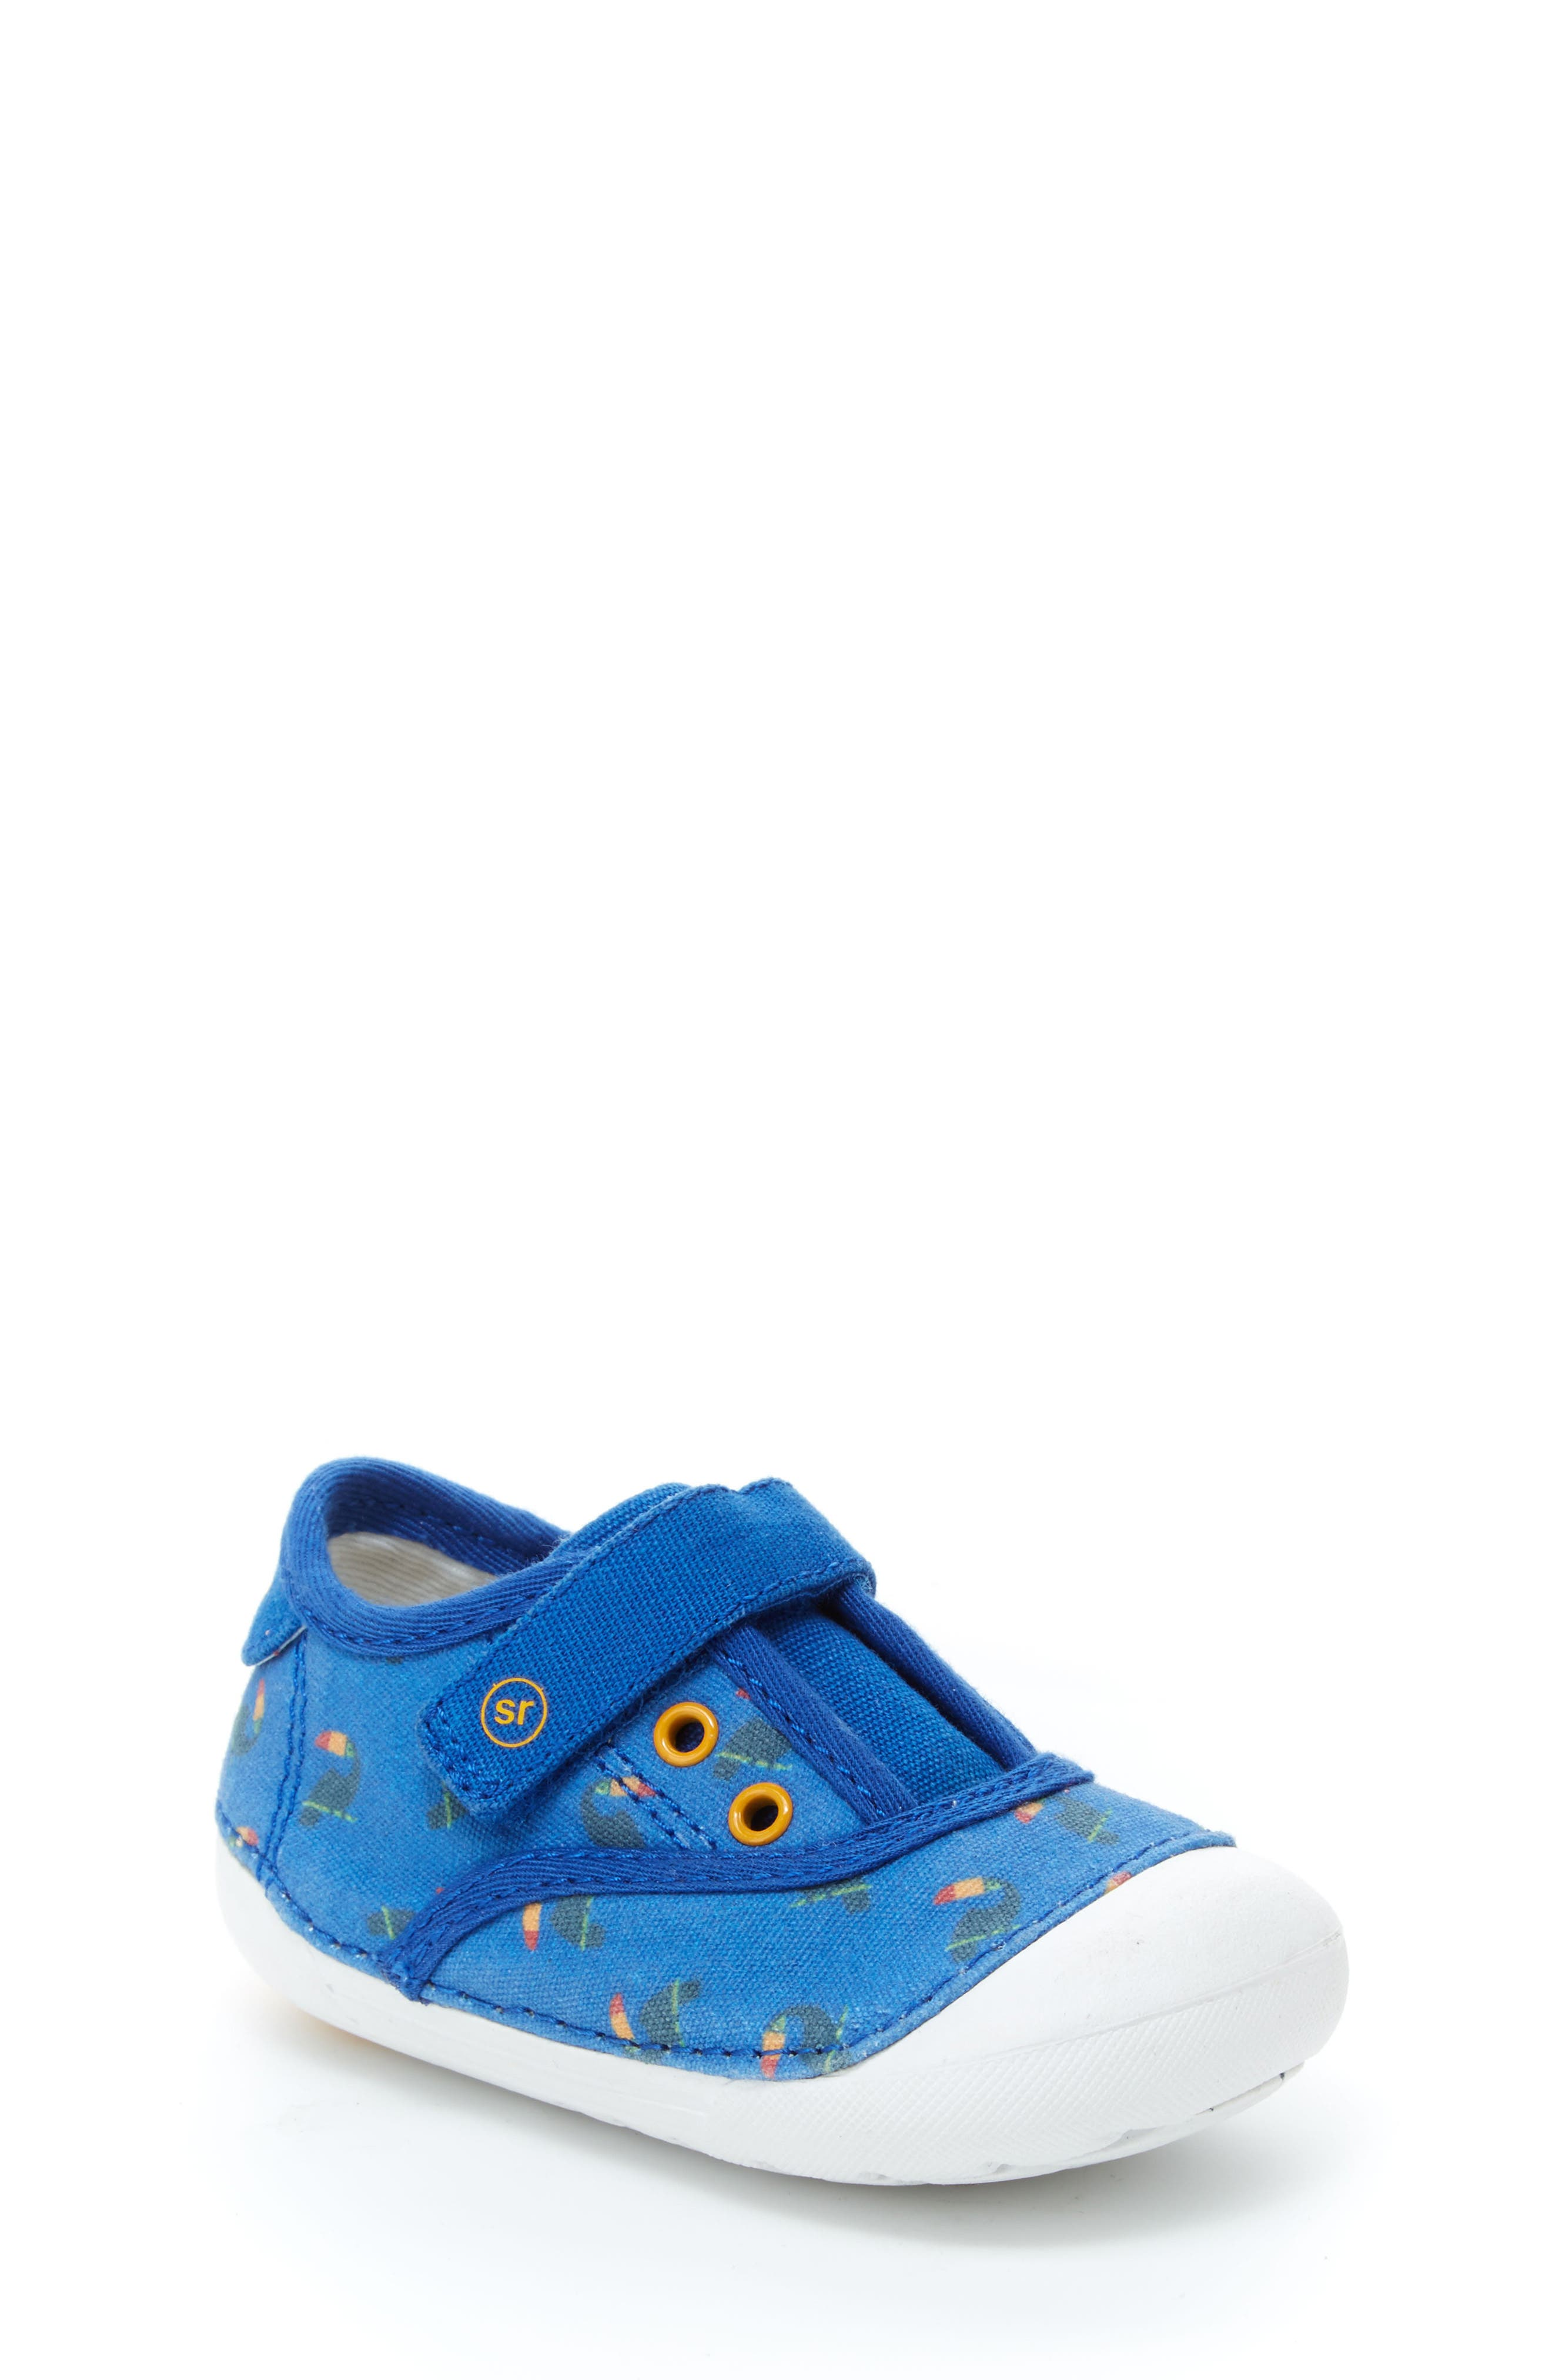 Soft Motion Avery Sneaker,                             Main thumbnail 1, color,                             Blue Toucan